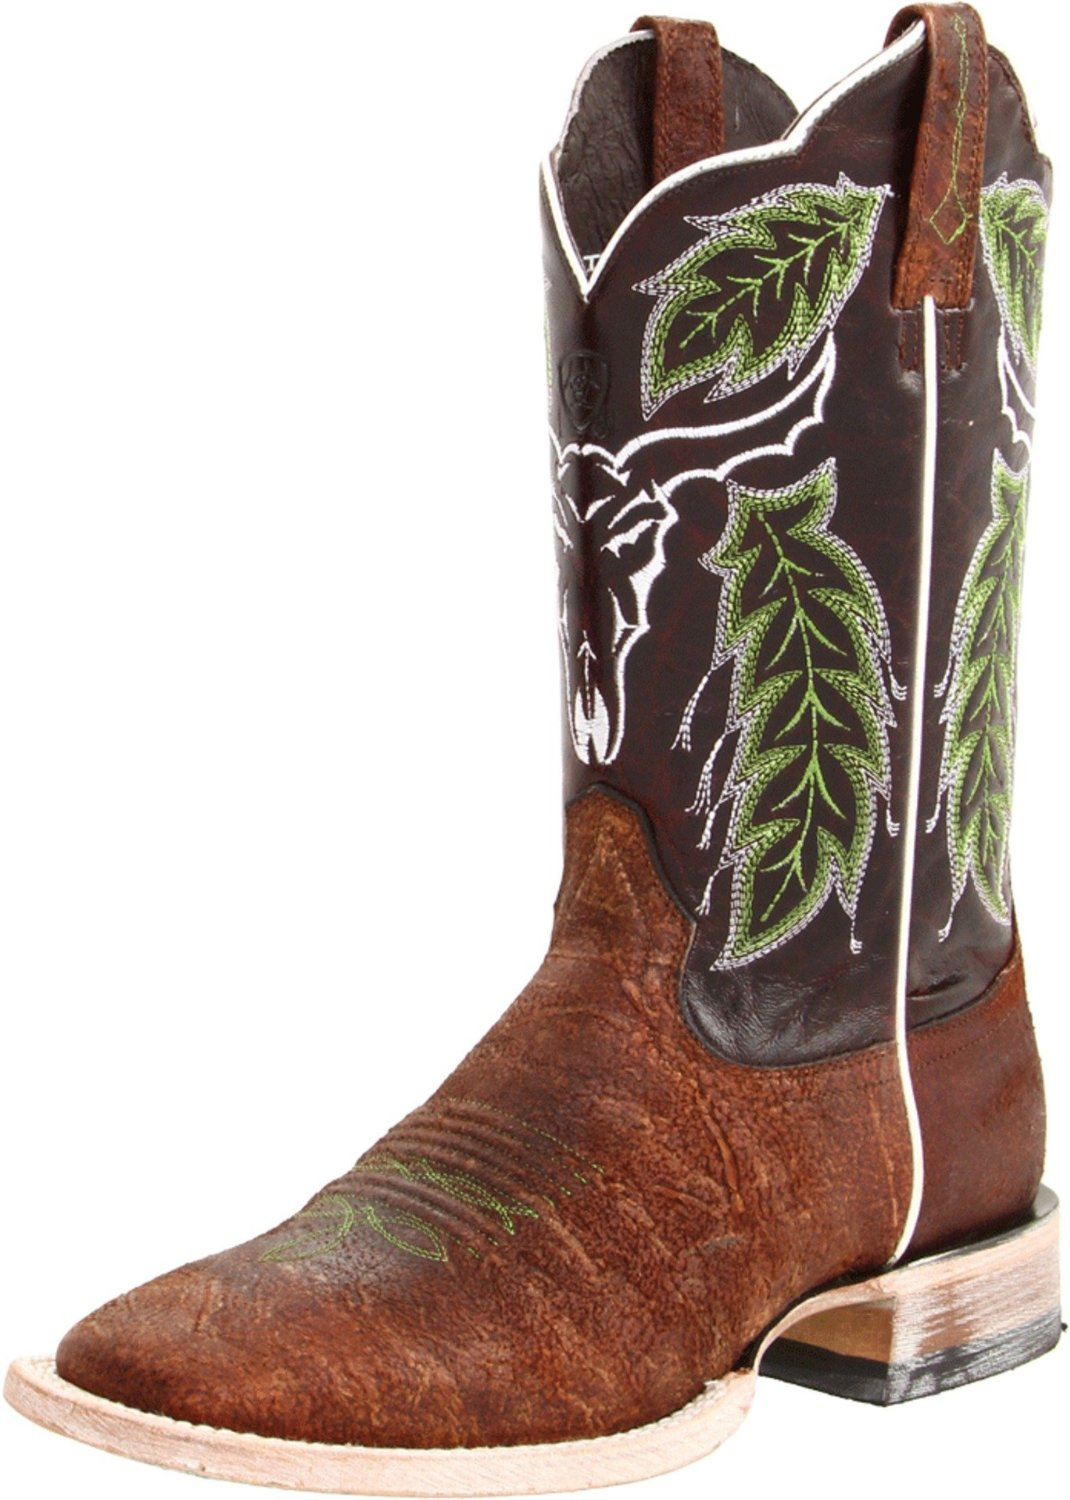 Ariat Mens Outlaw Boot In Brown For Men Punchy Tan